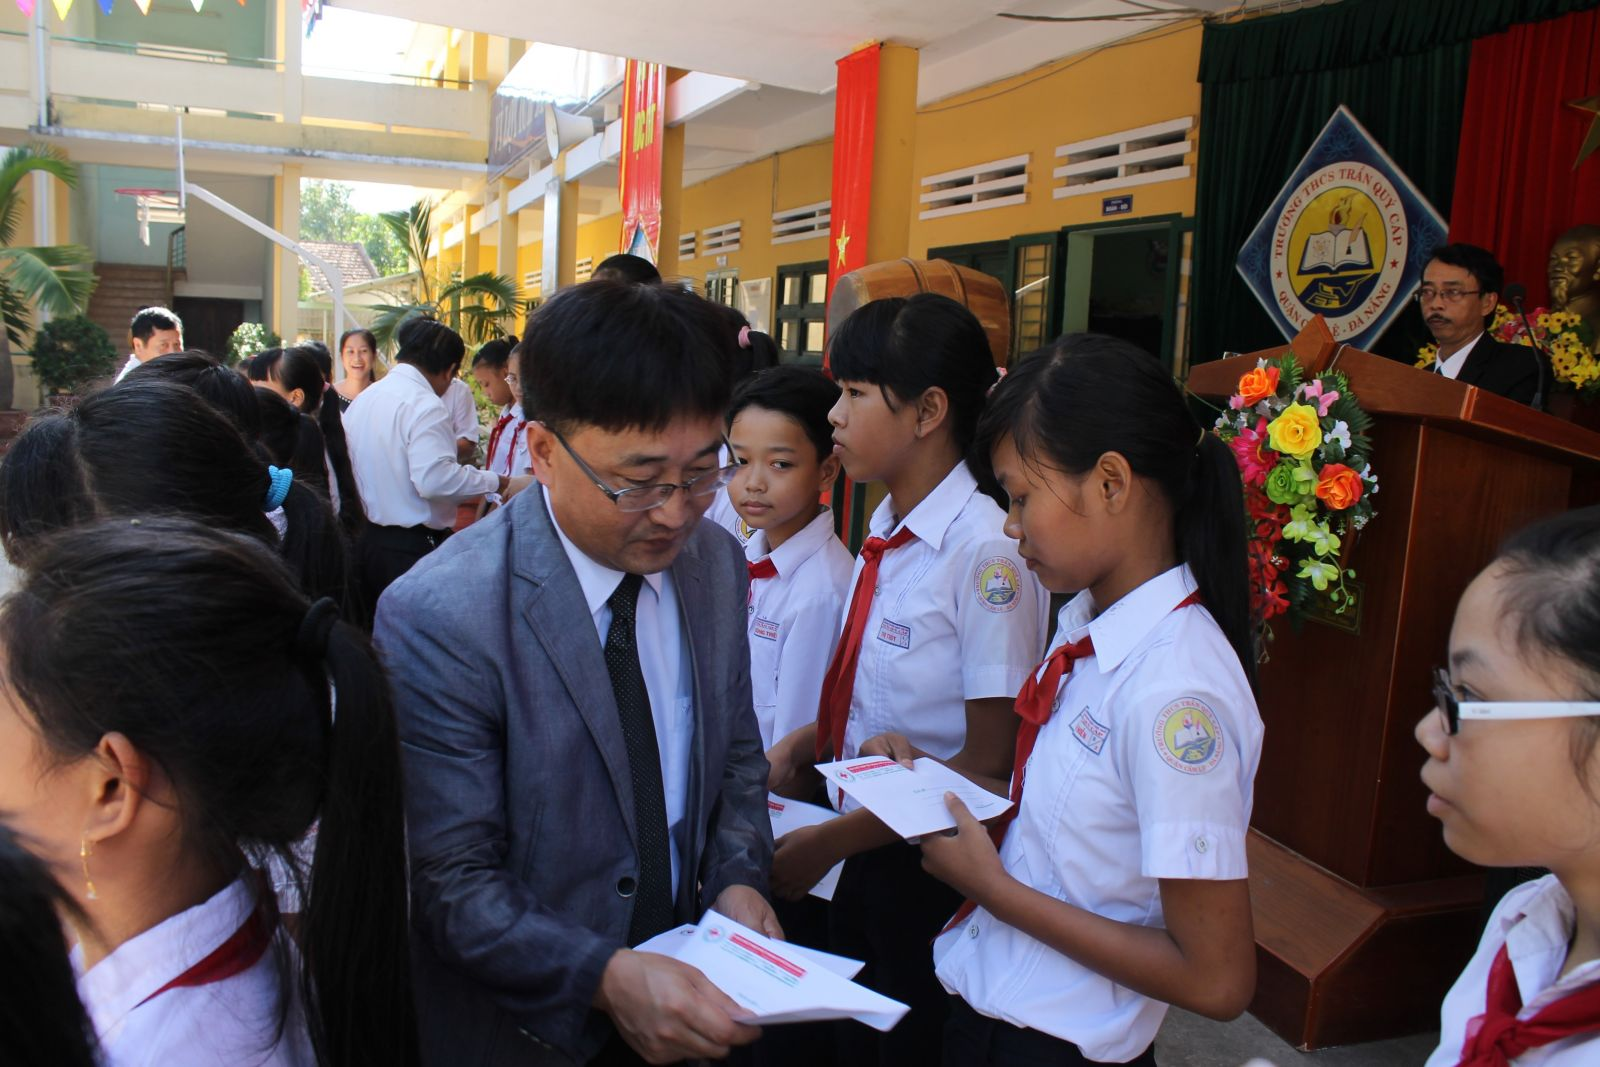 Scholarships granted in four provinces in the Central Vietnam